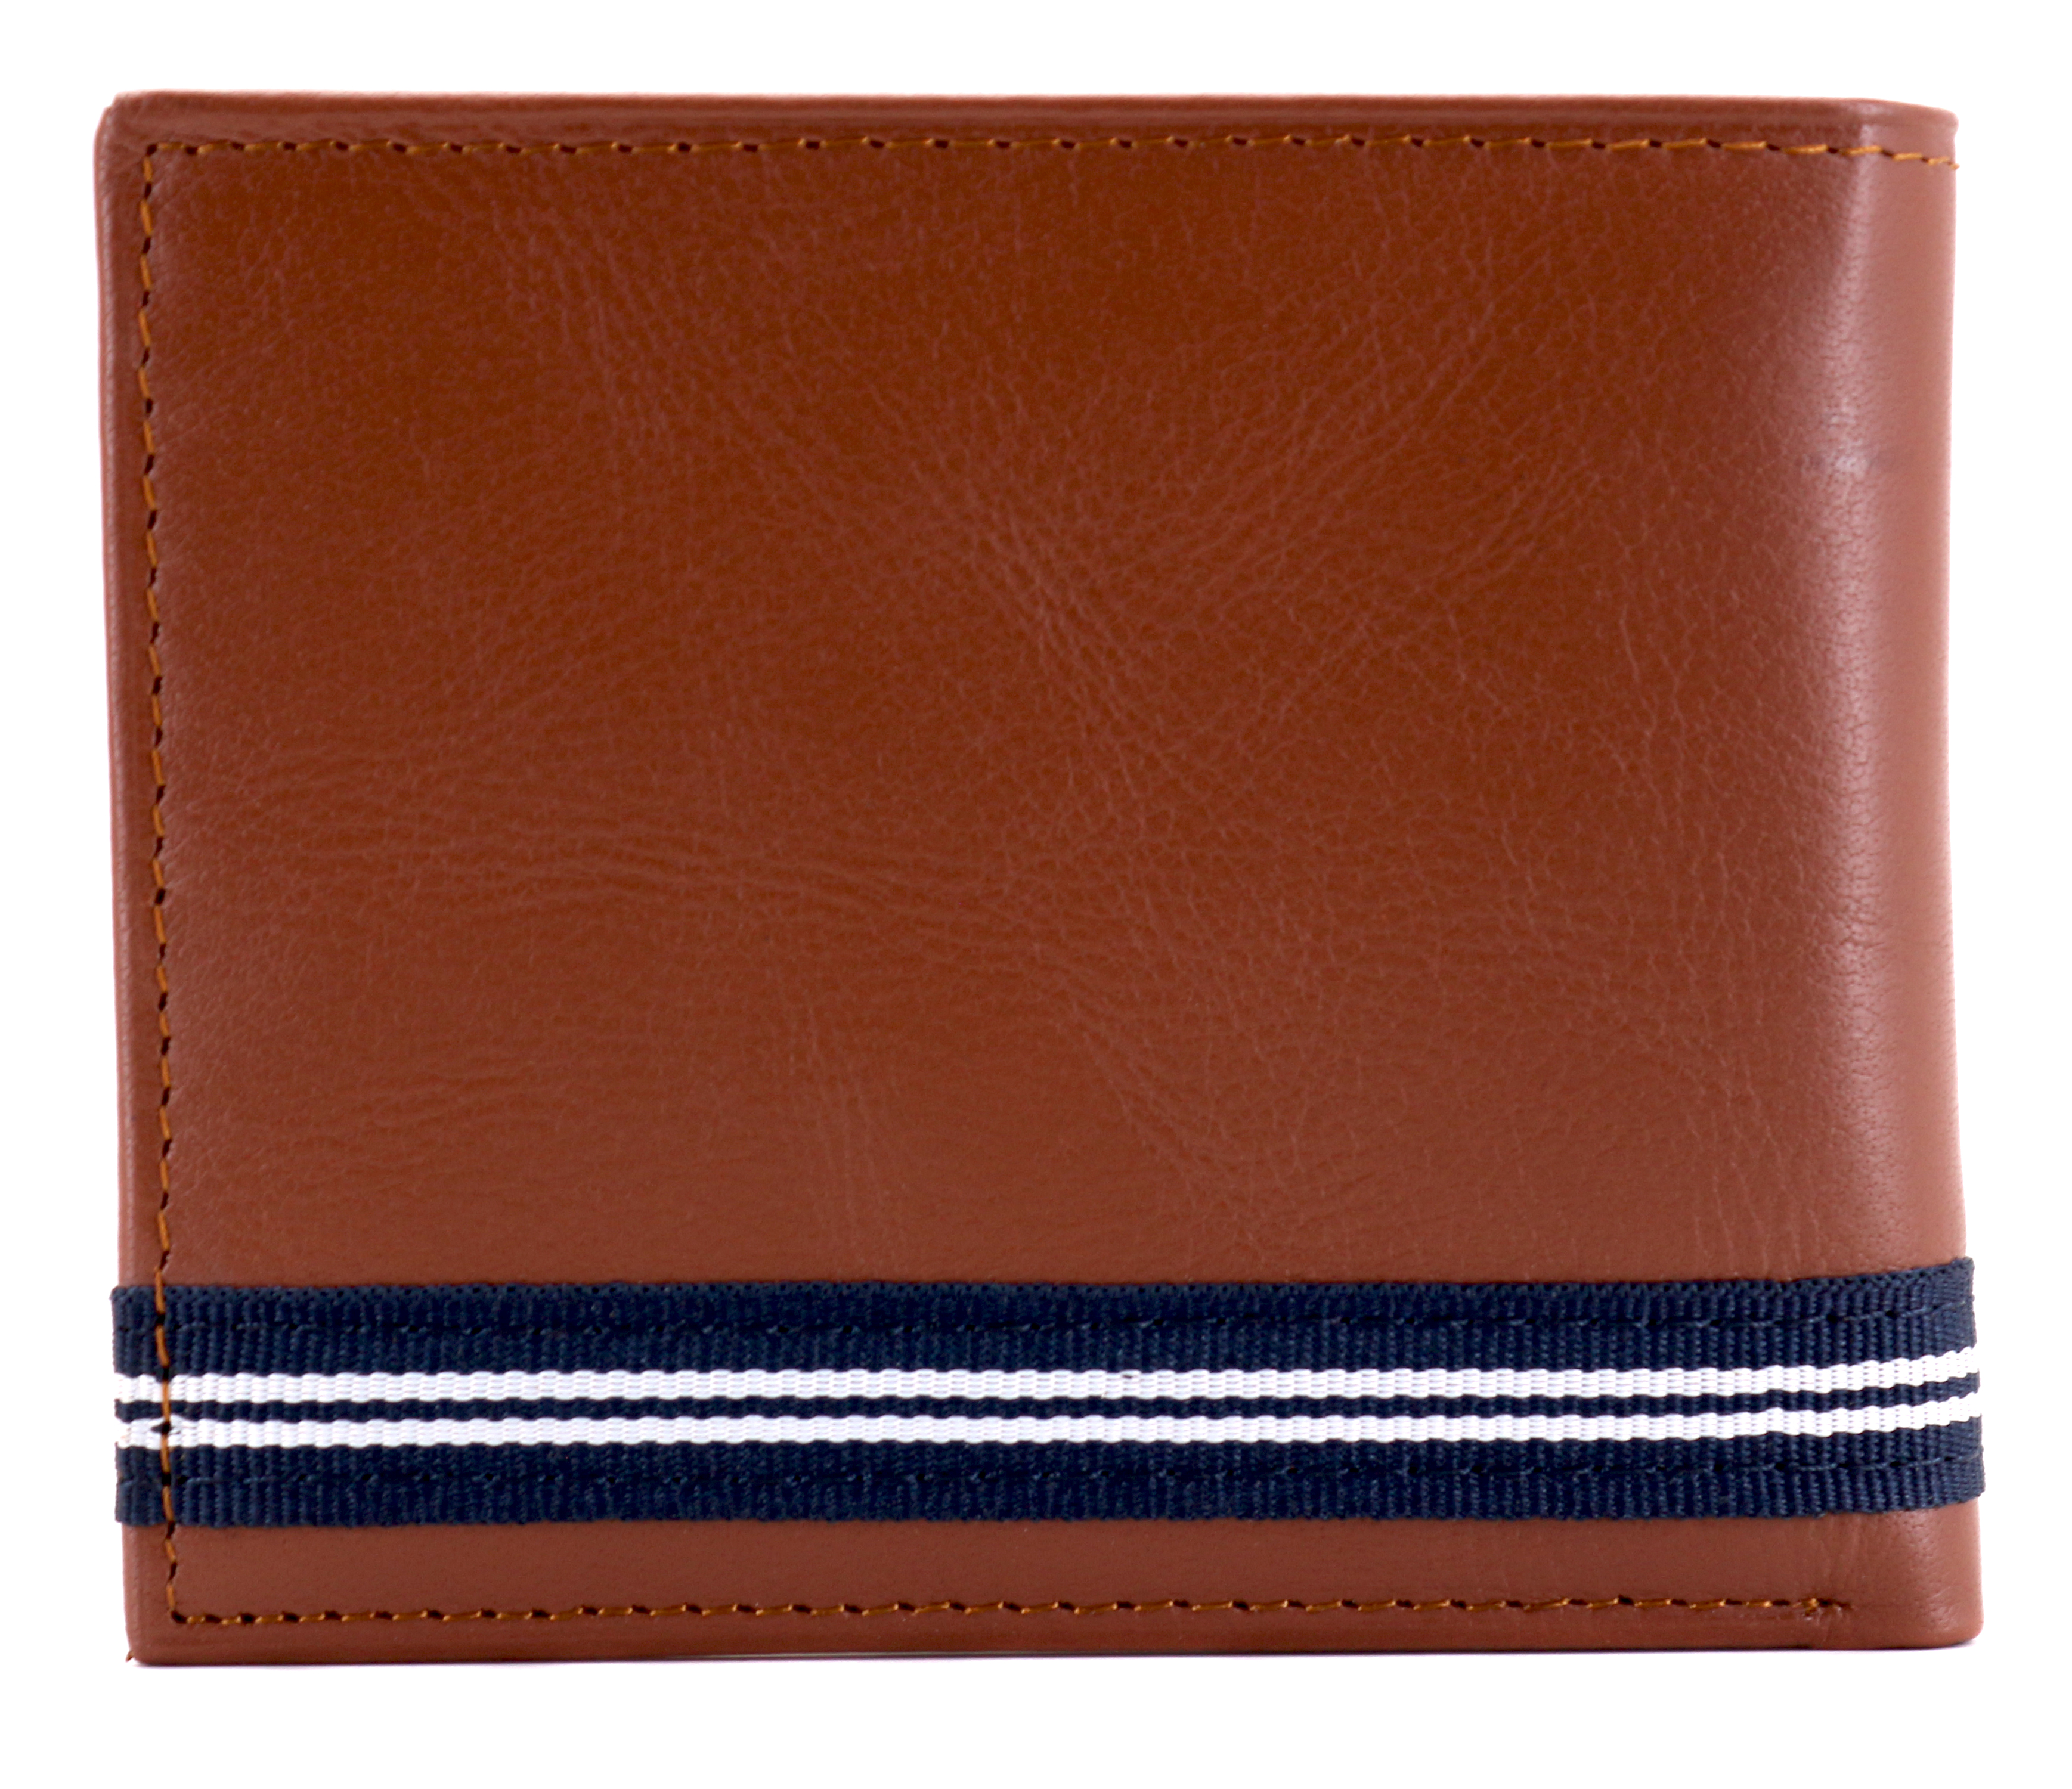 Nautica-Men-039-s-Genuine-Leather-Credit-Card-ID-Double-Billfold-Passcase-Wallet thumbnail 23